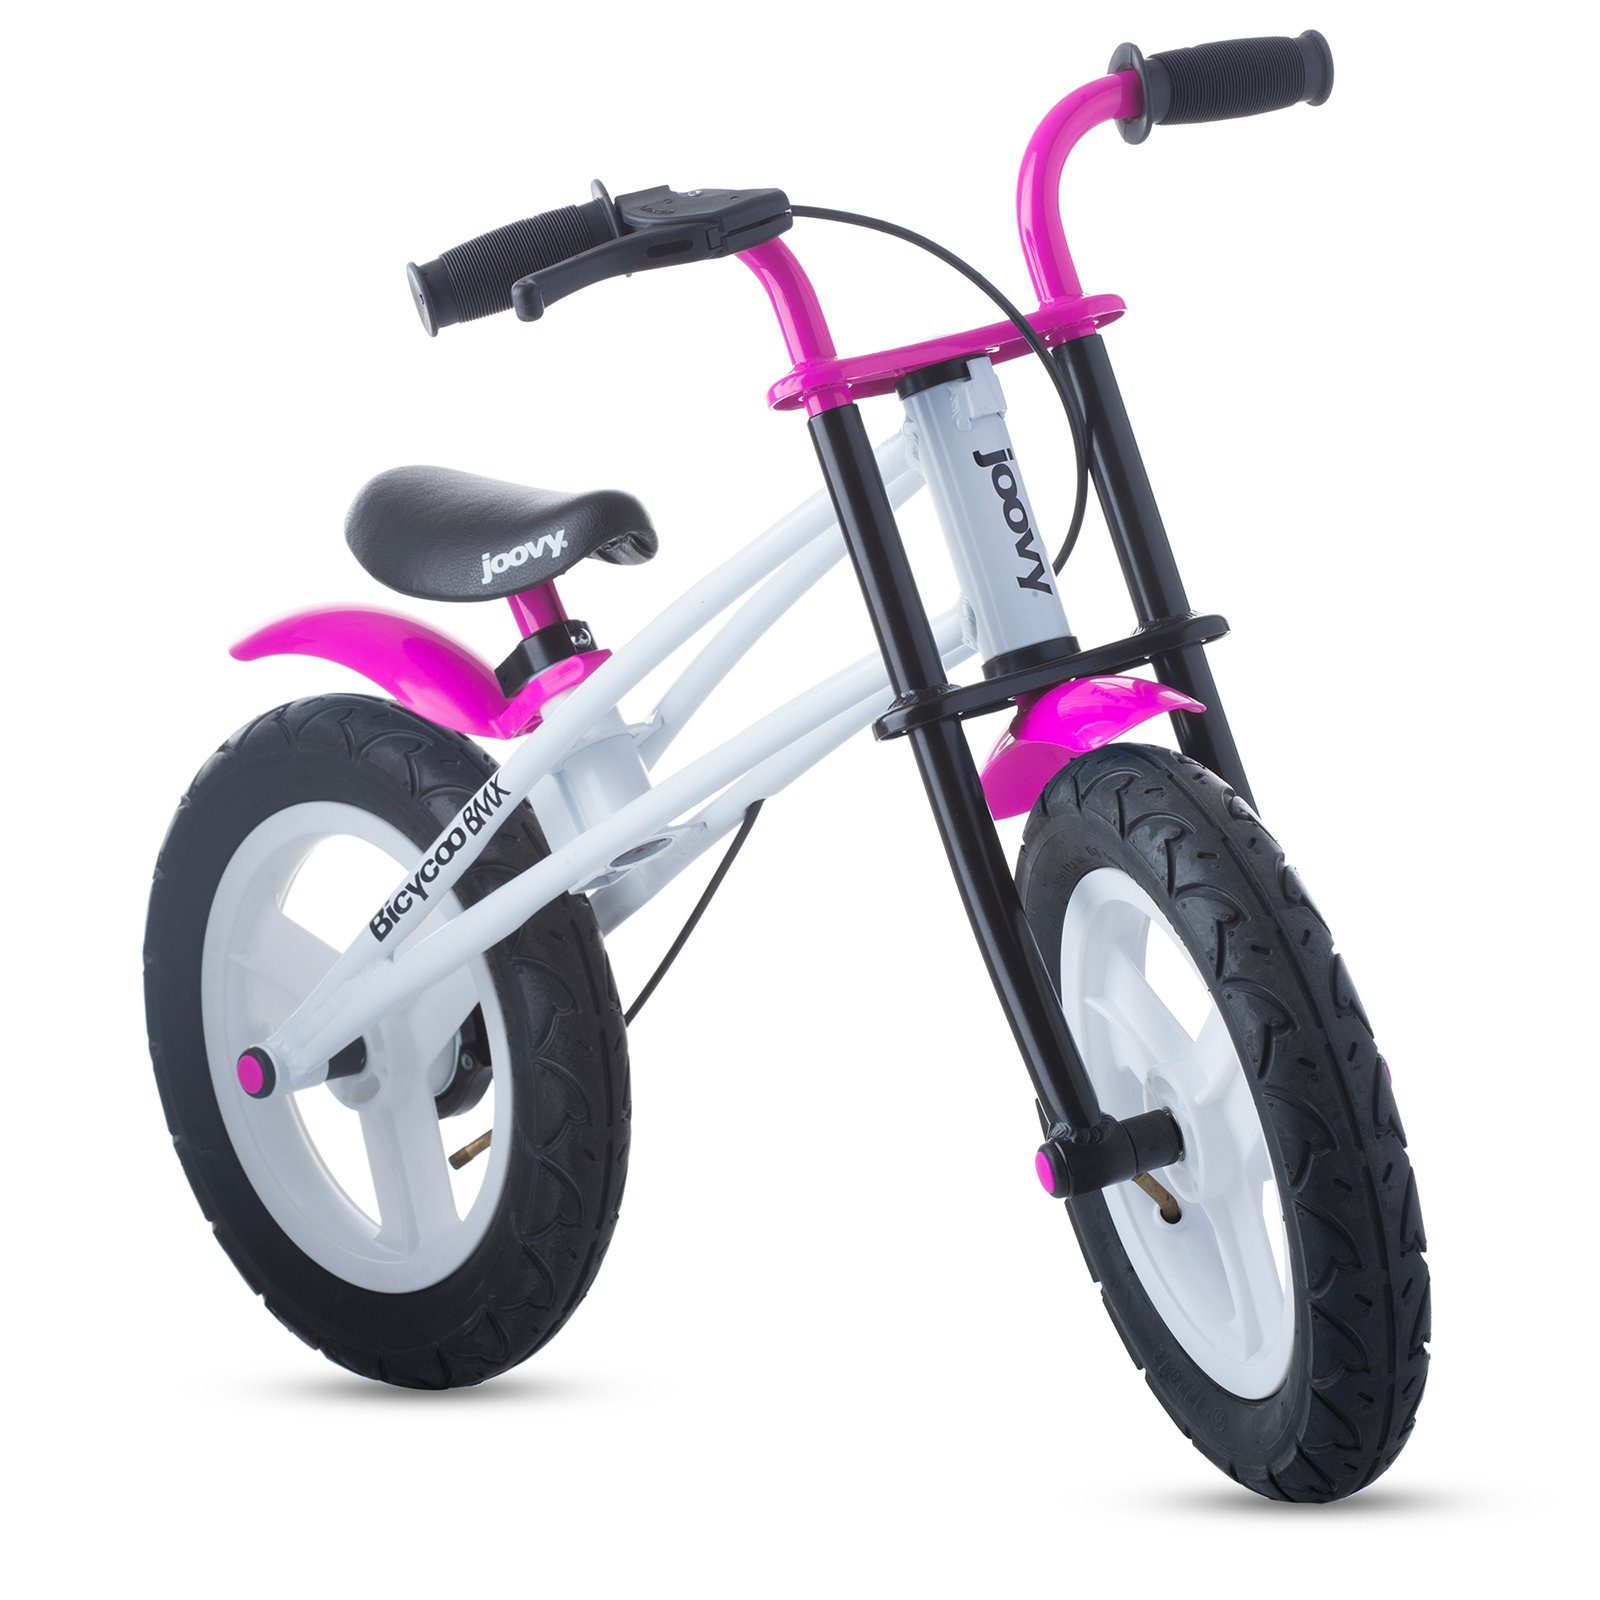 Joovy Bicycoo BMX Balance Bike Pink by Joovy